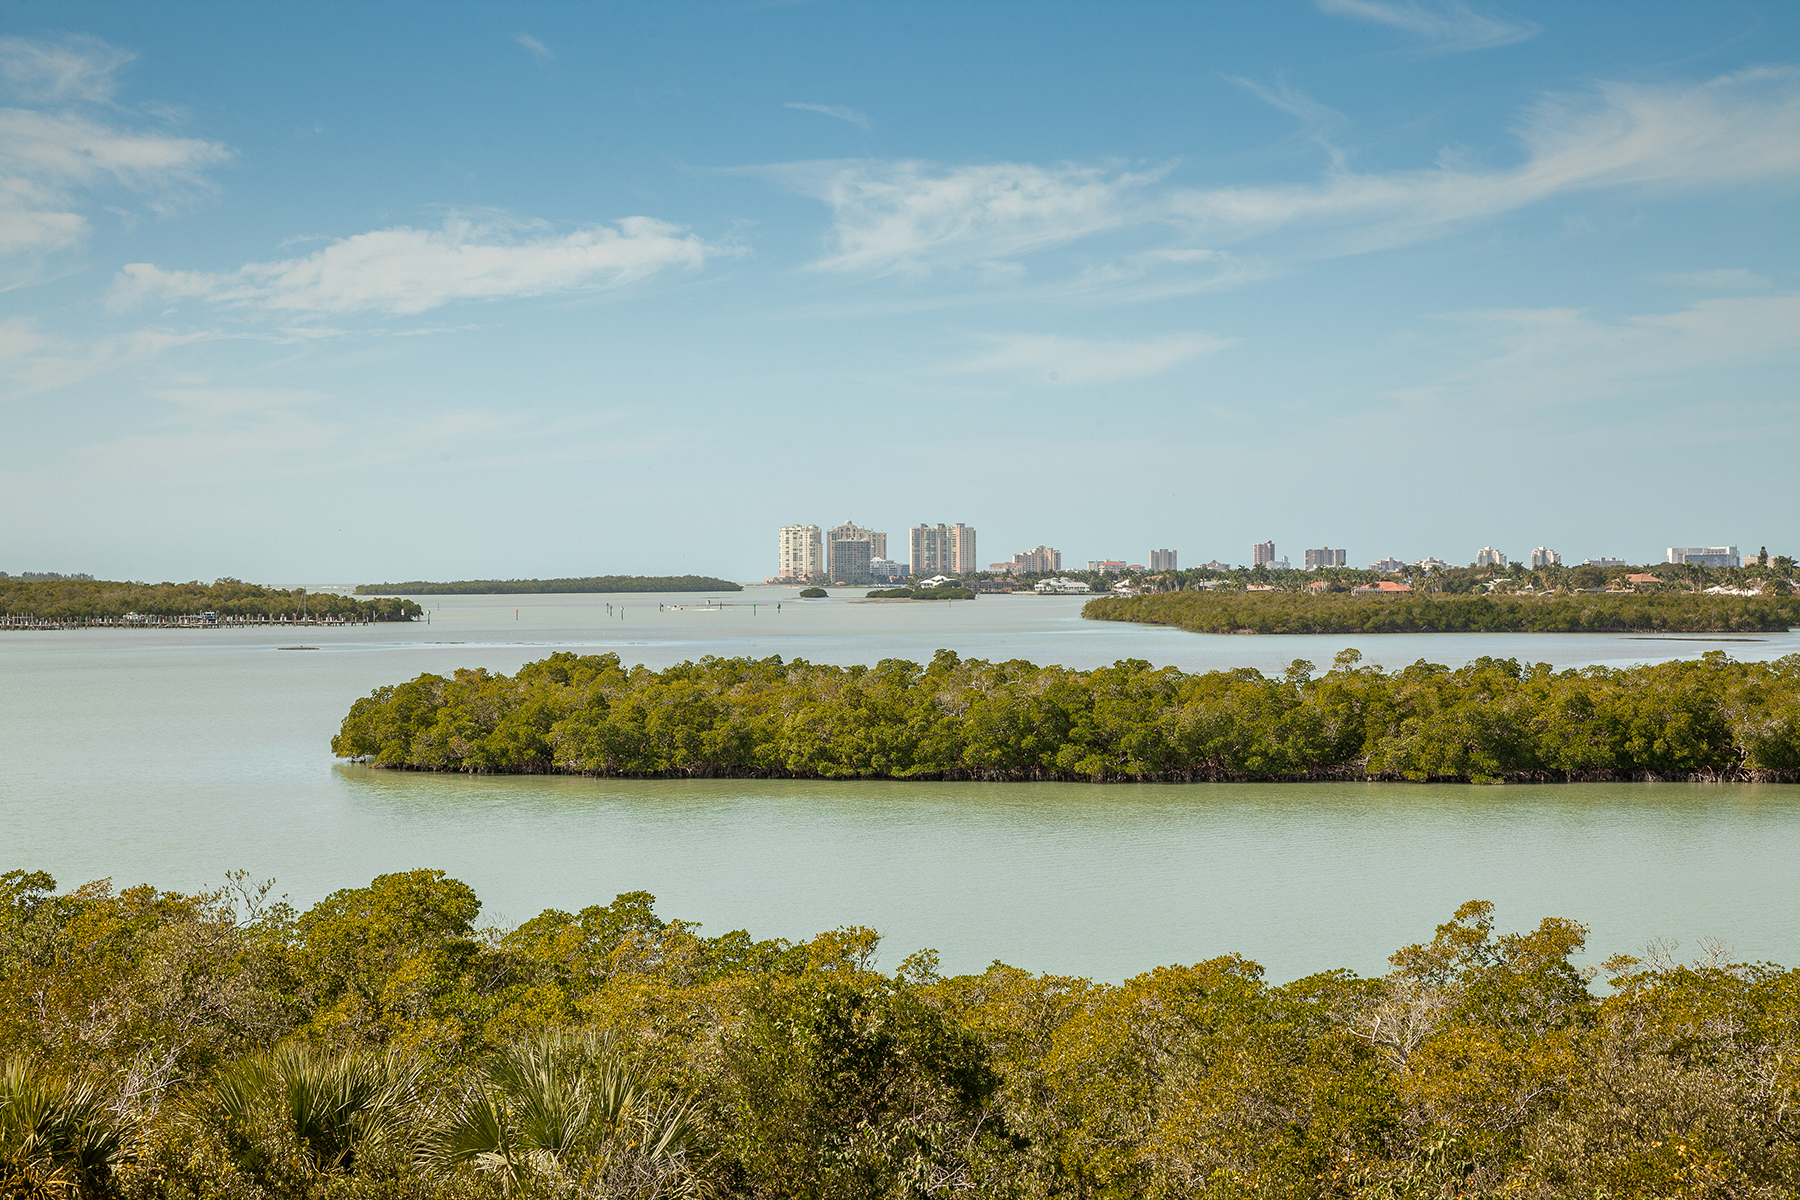 Land for Sale at KEY MARCO 1149 Blue Hill Creek Dr, Marco Island, Florida 34145 United States